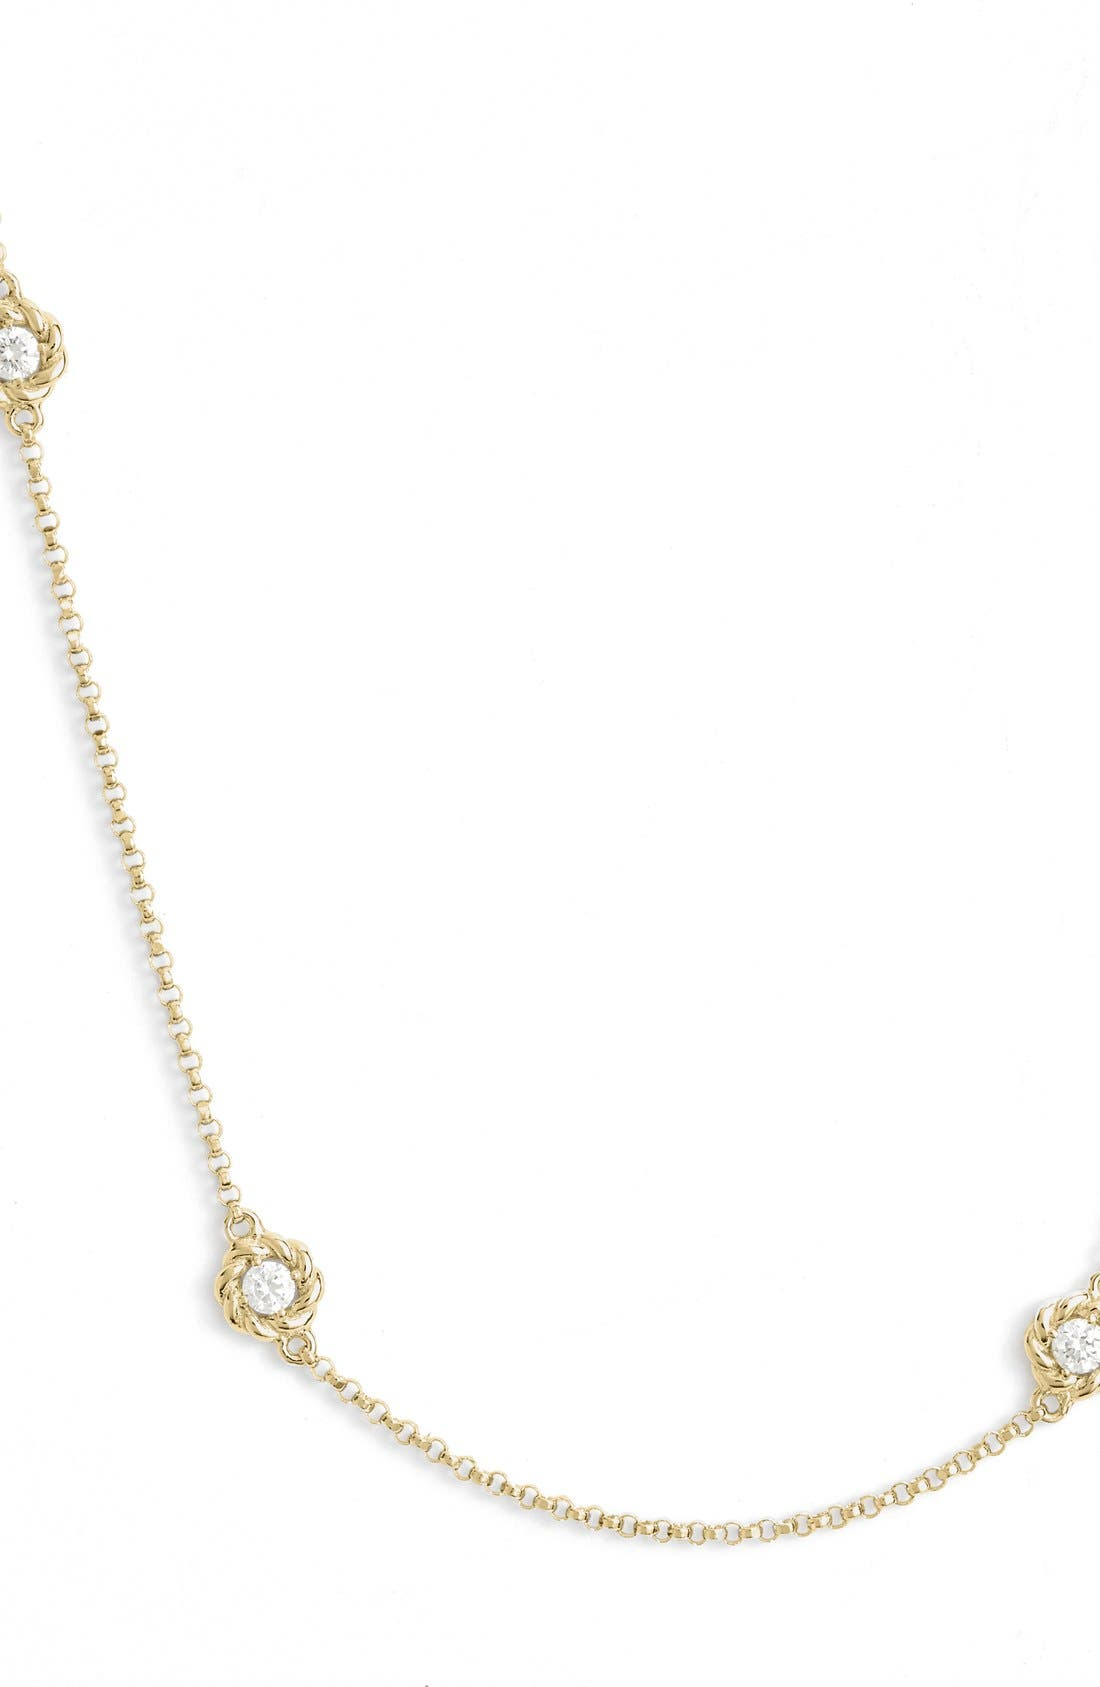 Diamond Station Necklace,                             Alternate thumbnail 2, color,                             Yellow Gold